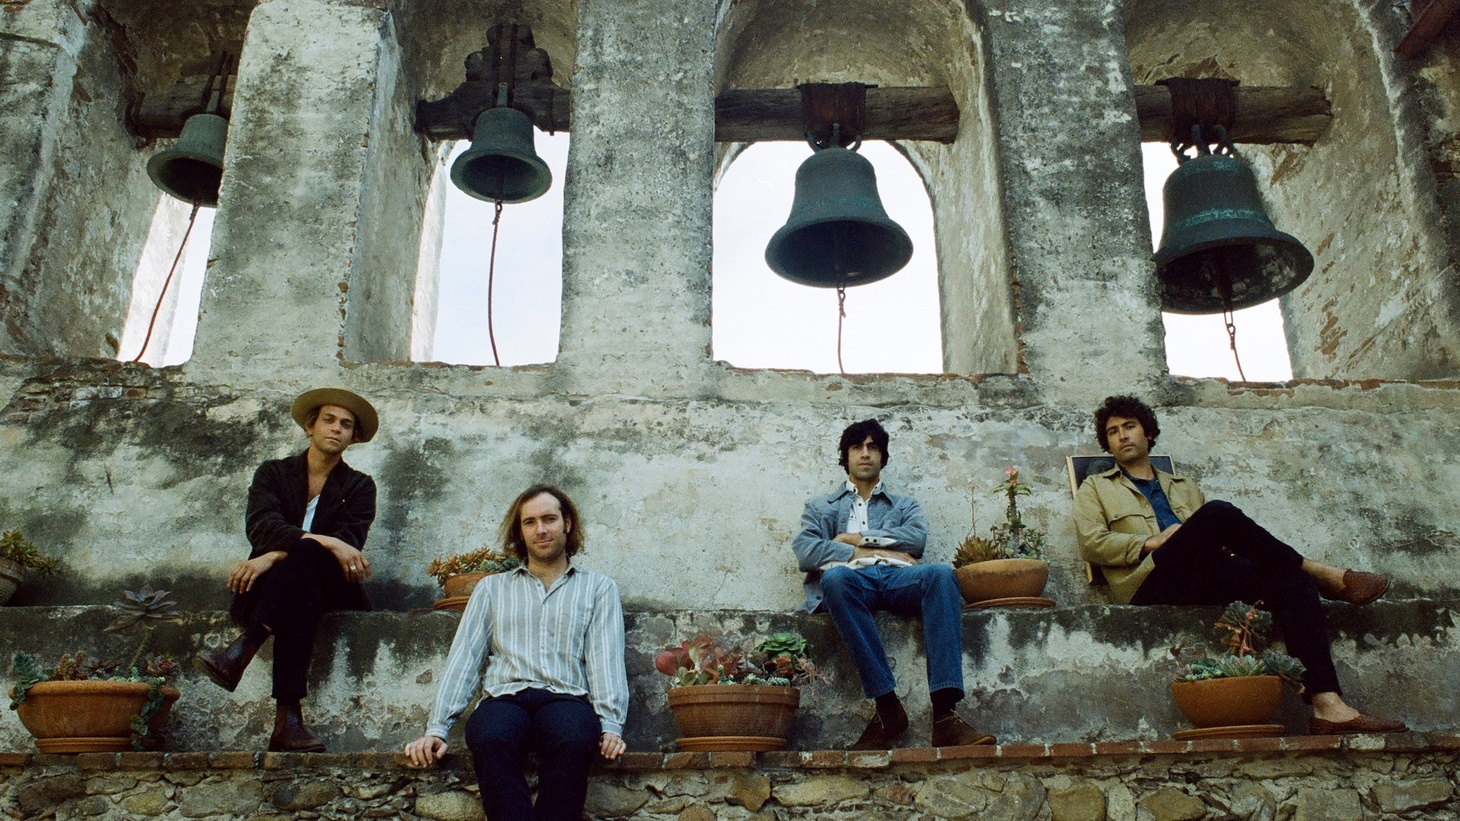 September brings many albums we're looking forward to, including one from LA rockers Allah-Las who beef up their sound with a bunch of new instrumentation that features viola, harpsichord and theremin.